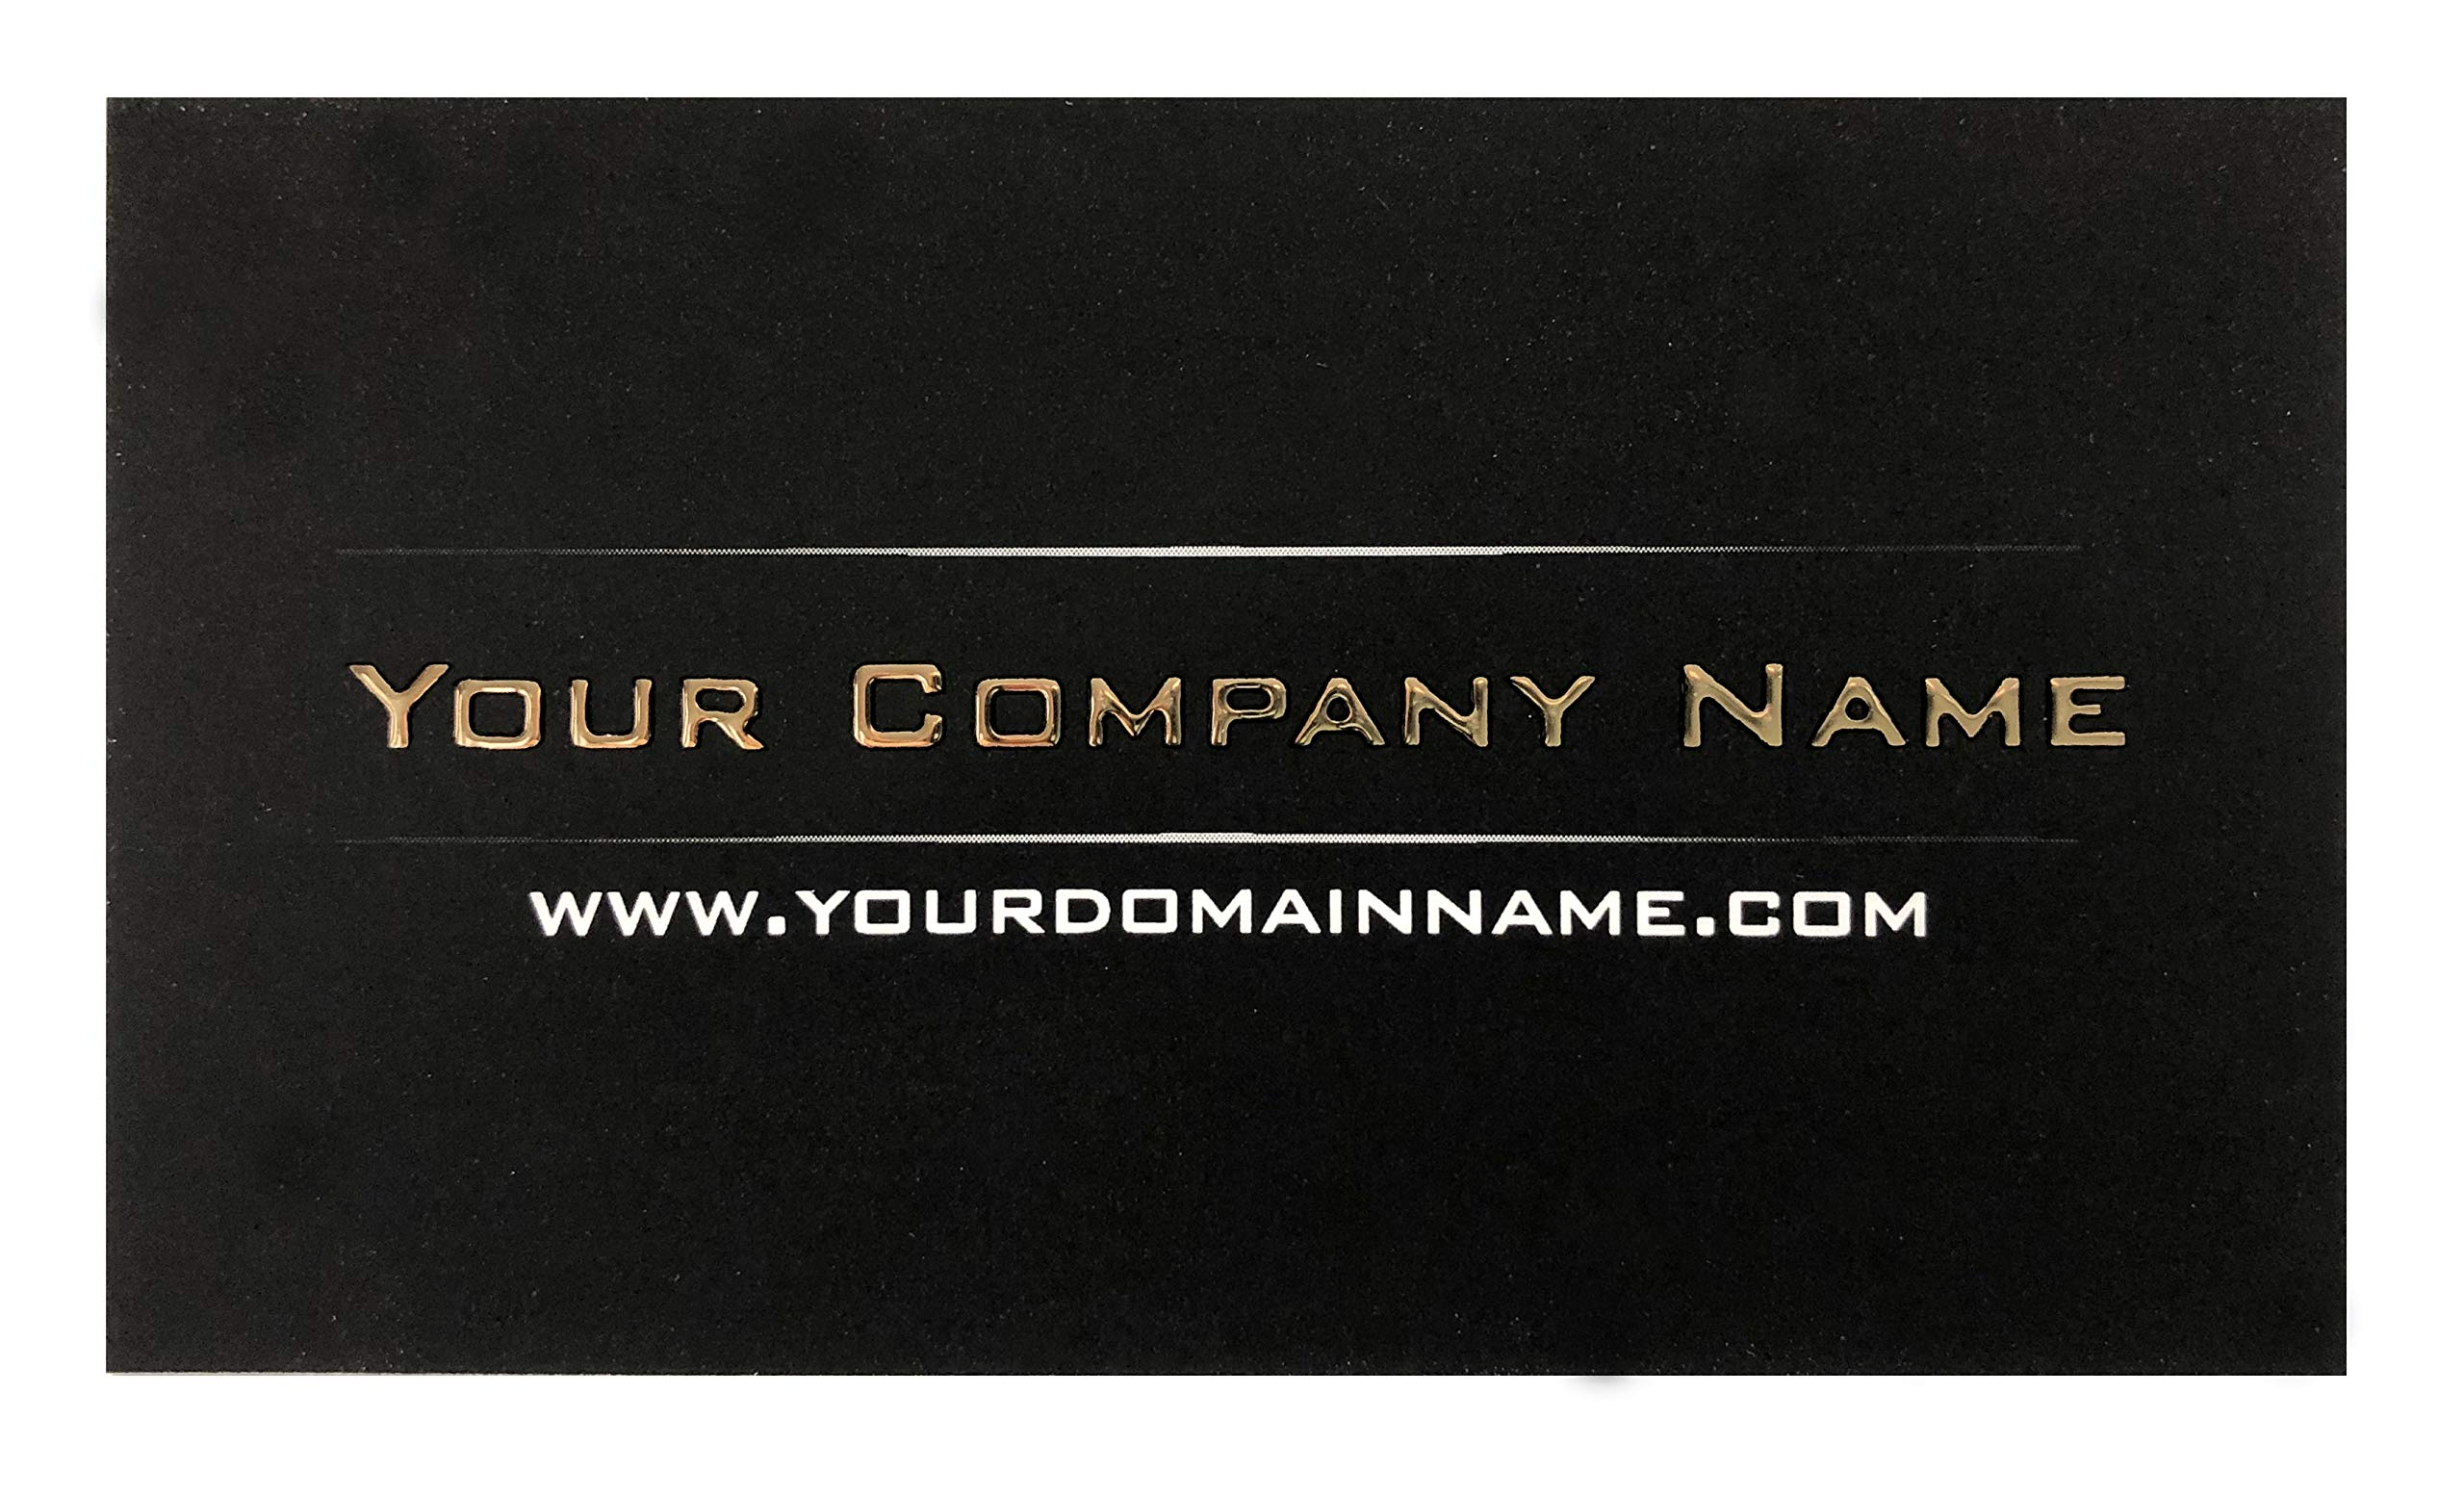 Custom Business Cards 100 pcs - Raised Gold Luxury - on 19pt card stock, suede finishing on both sides- Black business cards front and back, luxury business cards,Offset Printing, Made in The USA